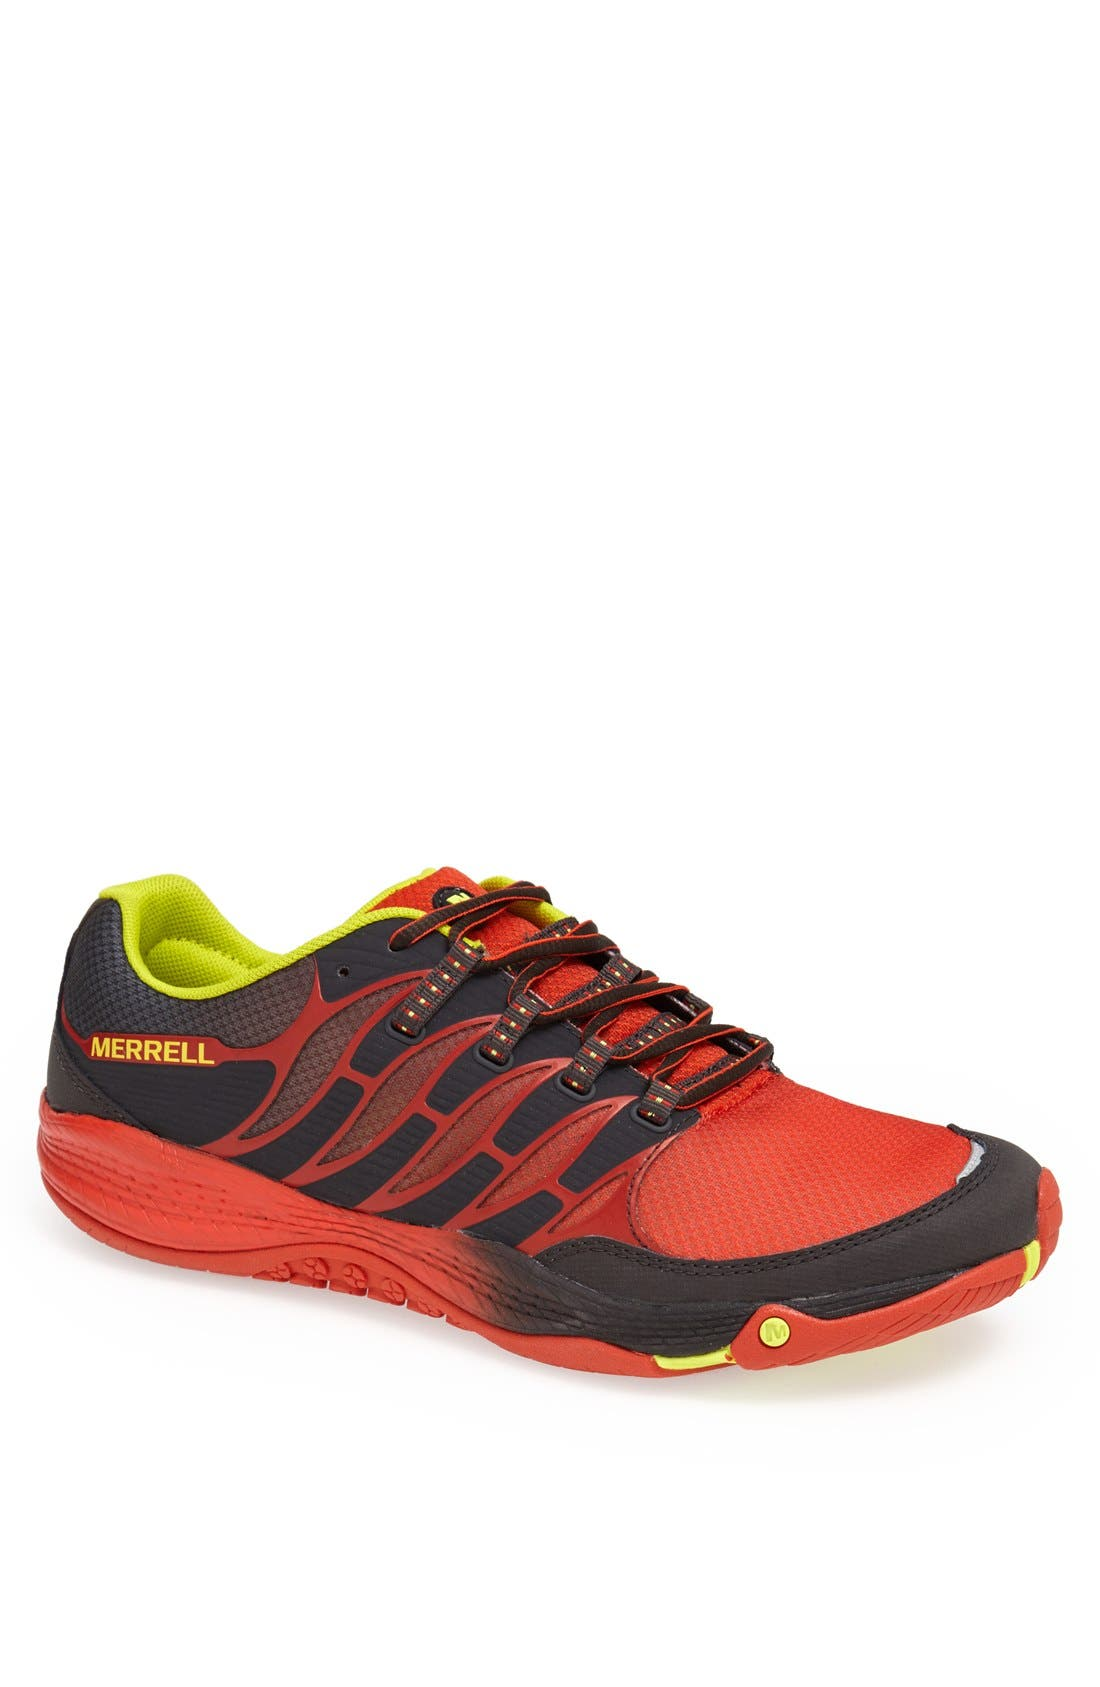 Main Image - Merrell 'Allout Fuse' Trail Running Shoe (Men)